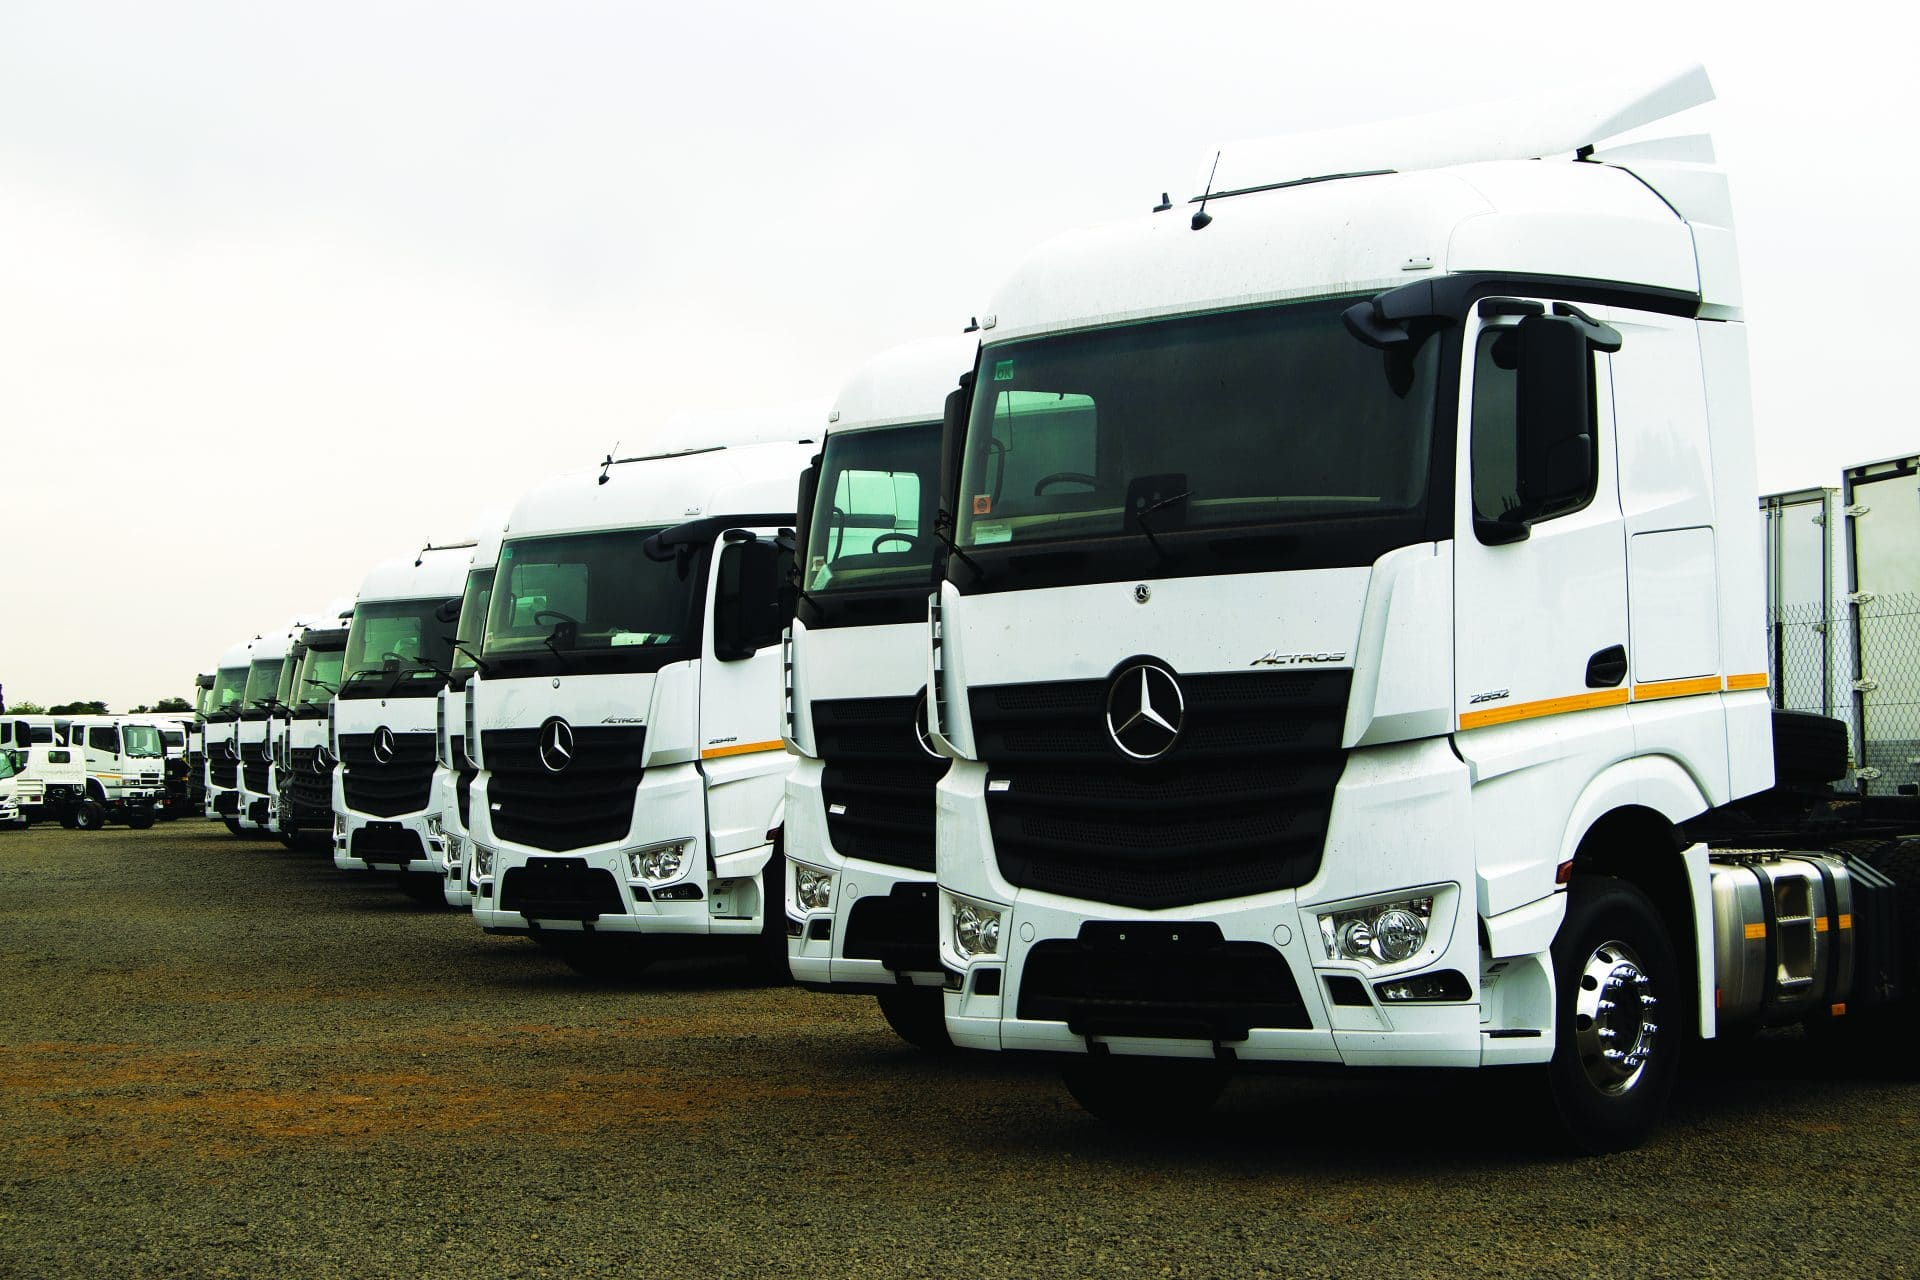 Trucks parked at the One Logix facility in Kempton Park, Johannesburg